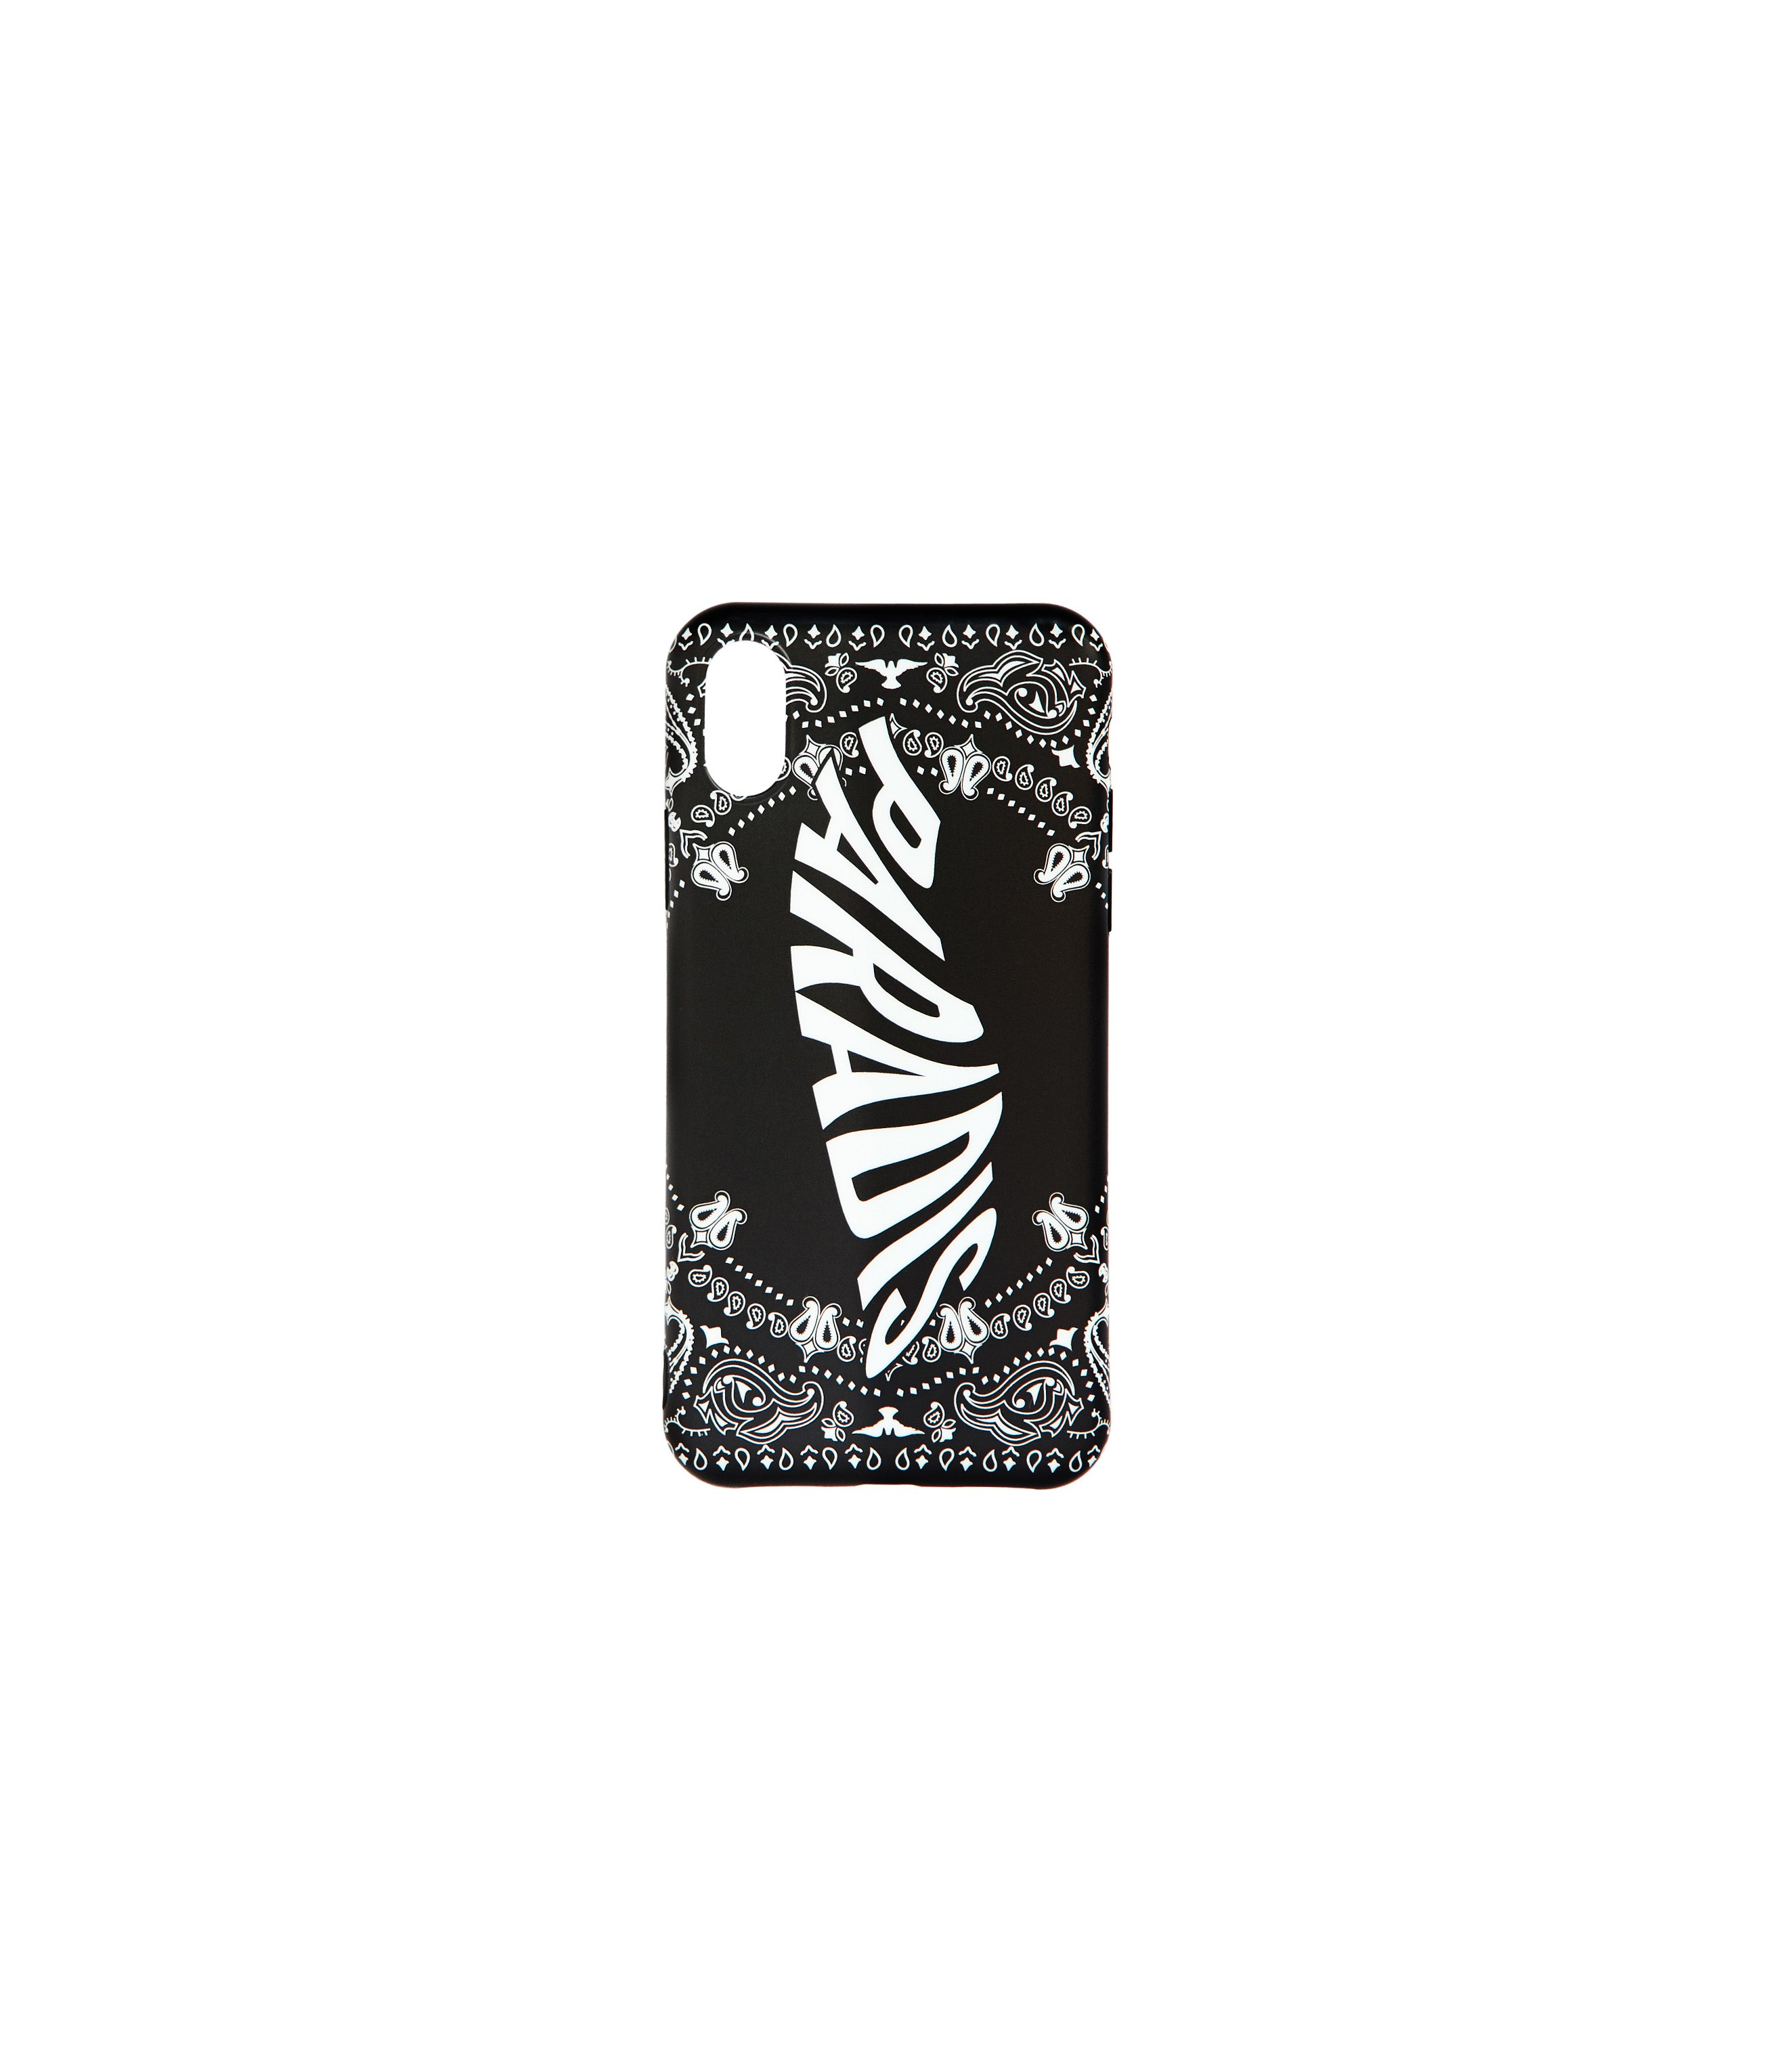 BLACK PAISLEY IPHONE CASE